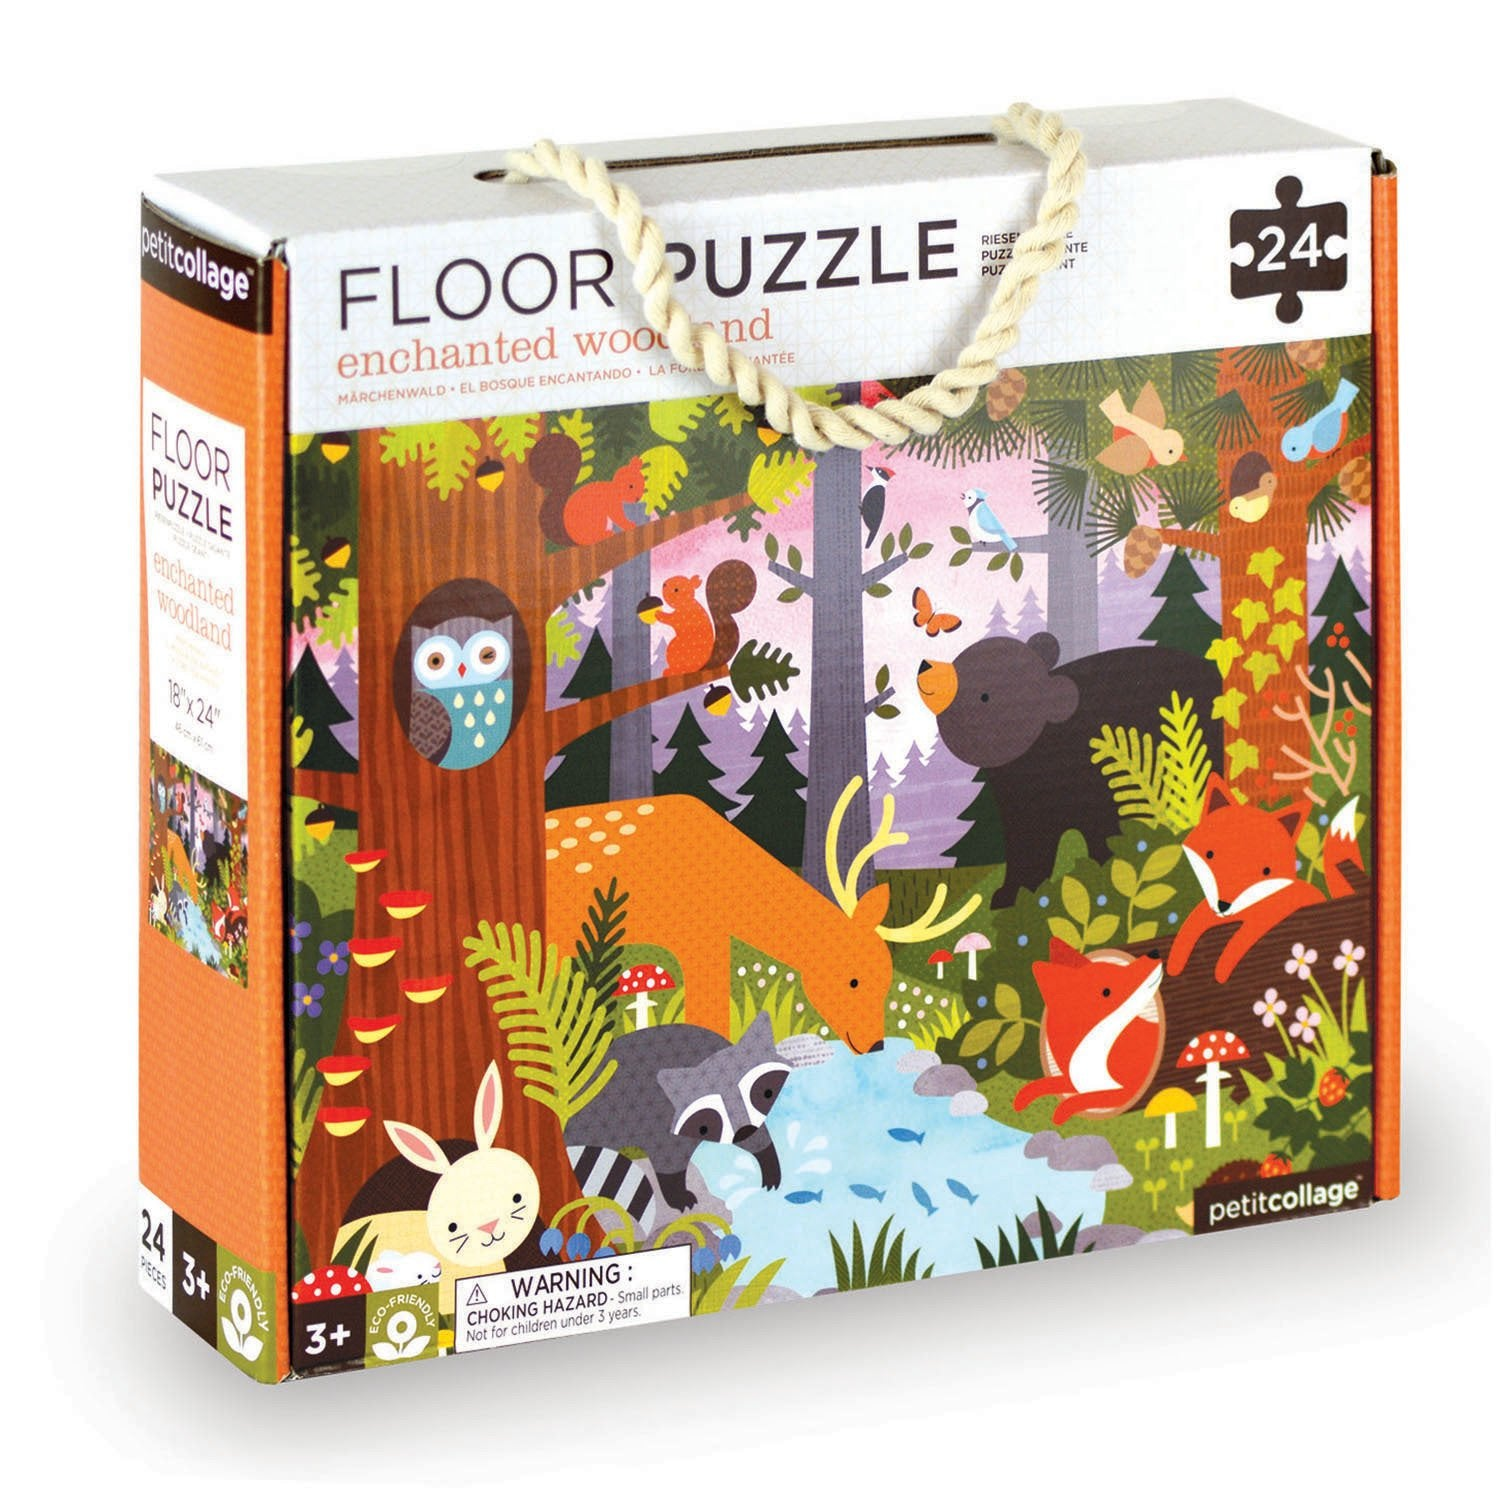 Petit Collage Floor Puzzles Petit Collage Puzzles Enchanted Woodland at Little Earth Nest Eco Shop